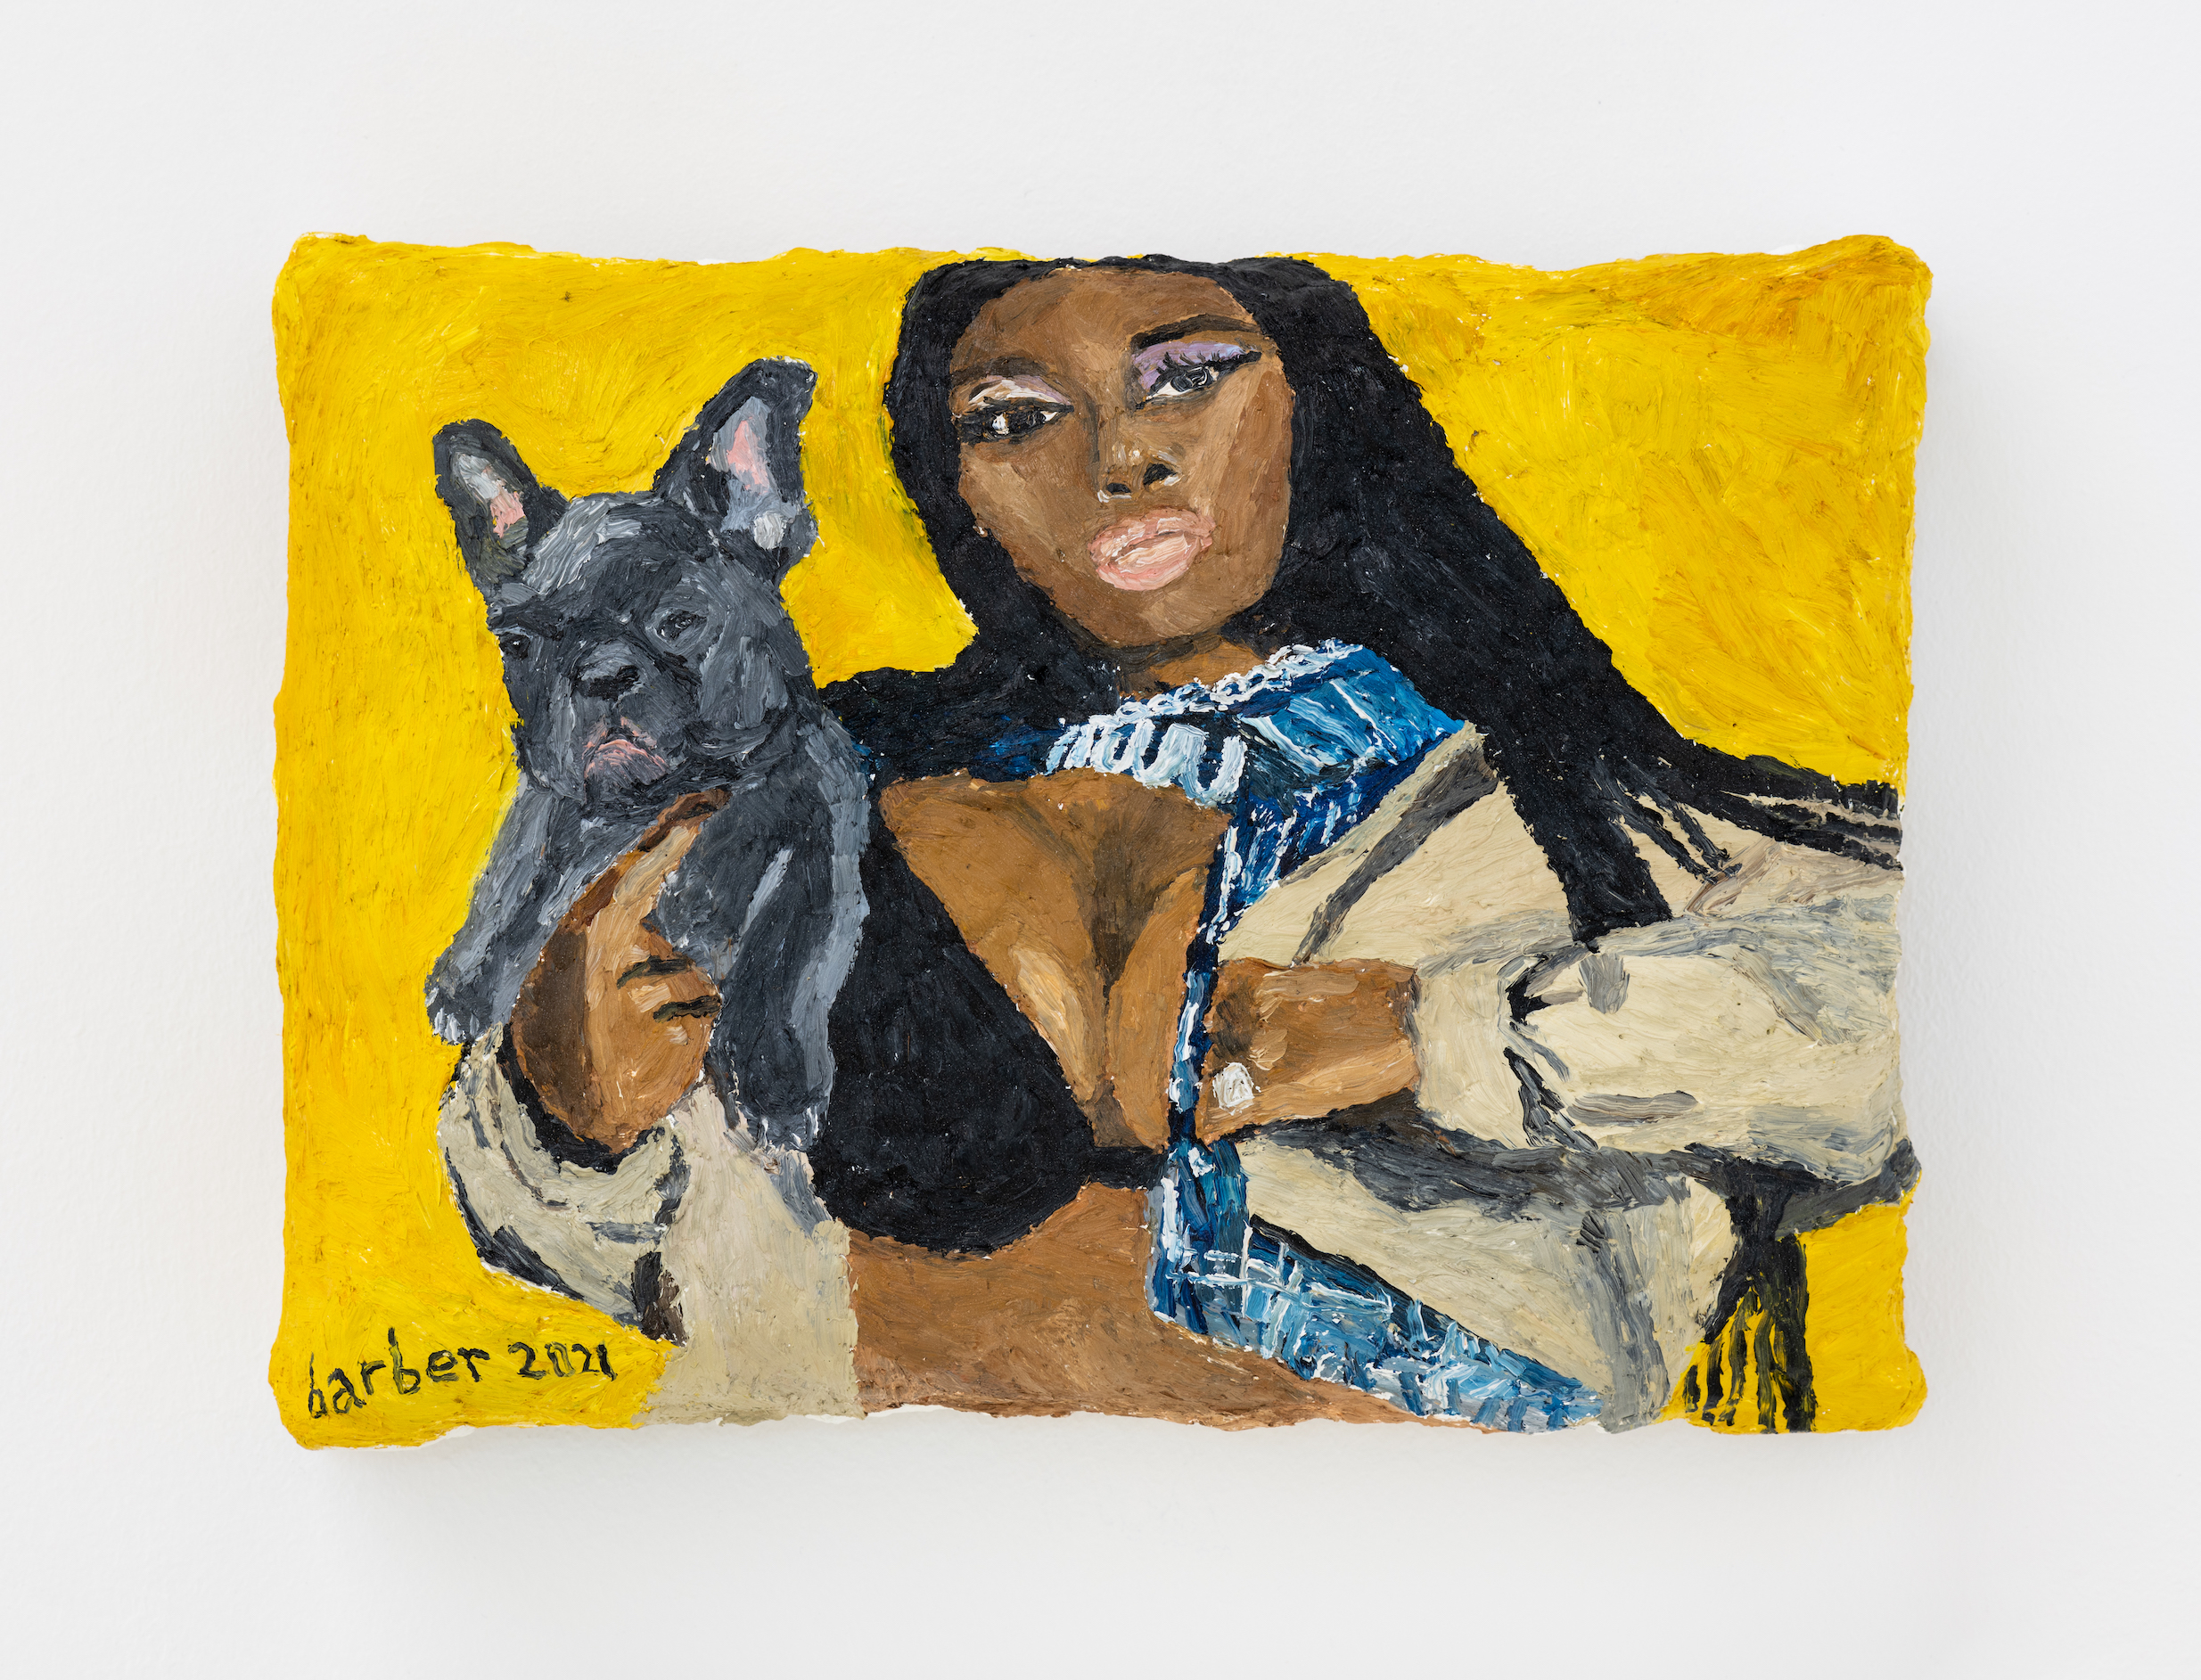 Sophie Barber Megan Thee Stallion with her puppies, 2021. Oil on canvas, 7 7⁄8 x 10 5⁄8 in (20 x 27 cm)